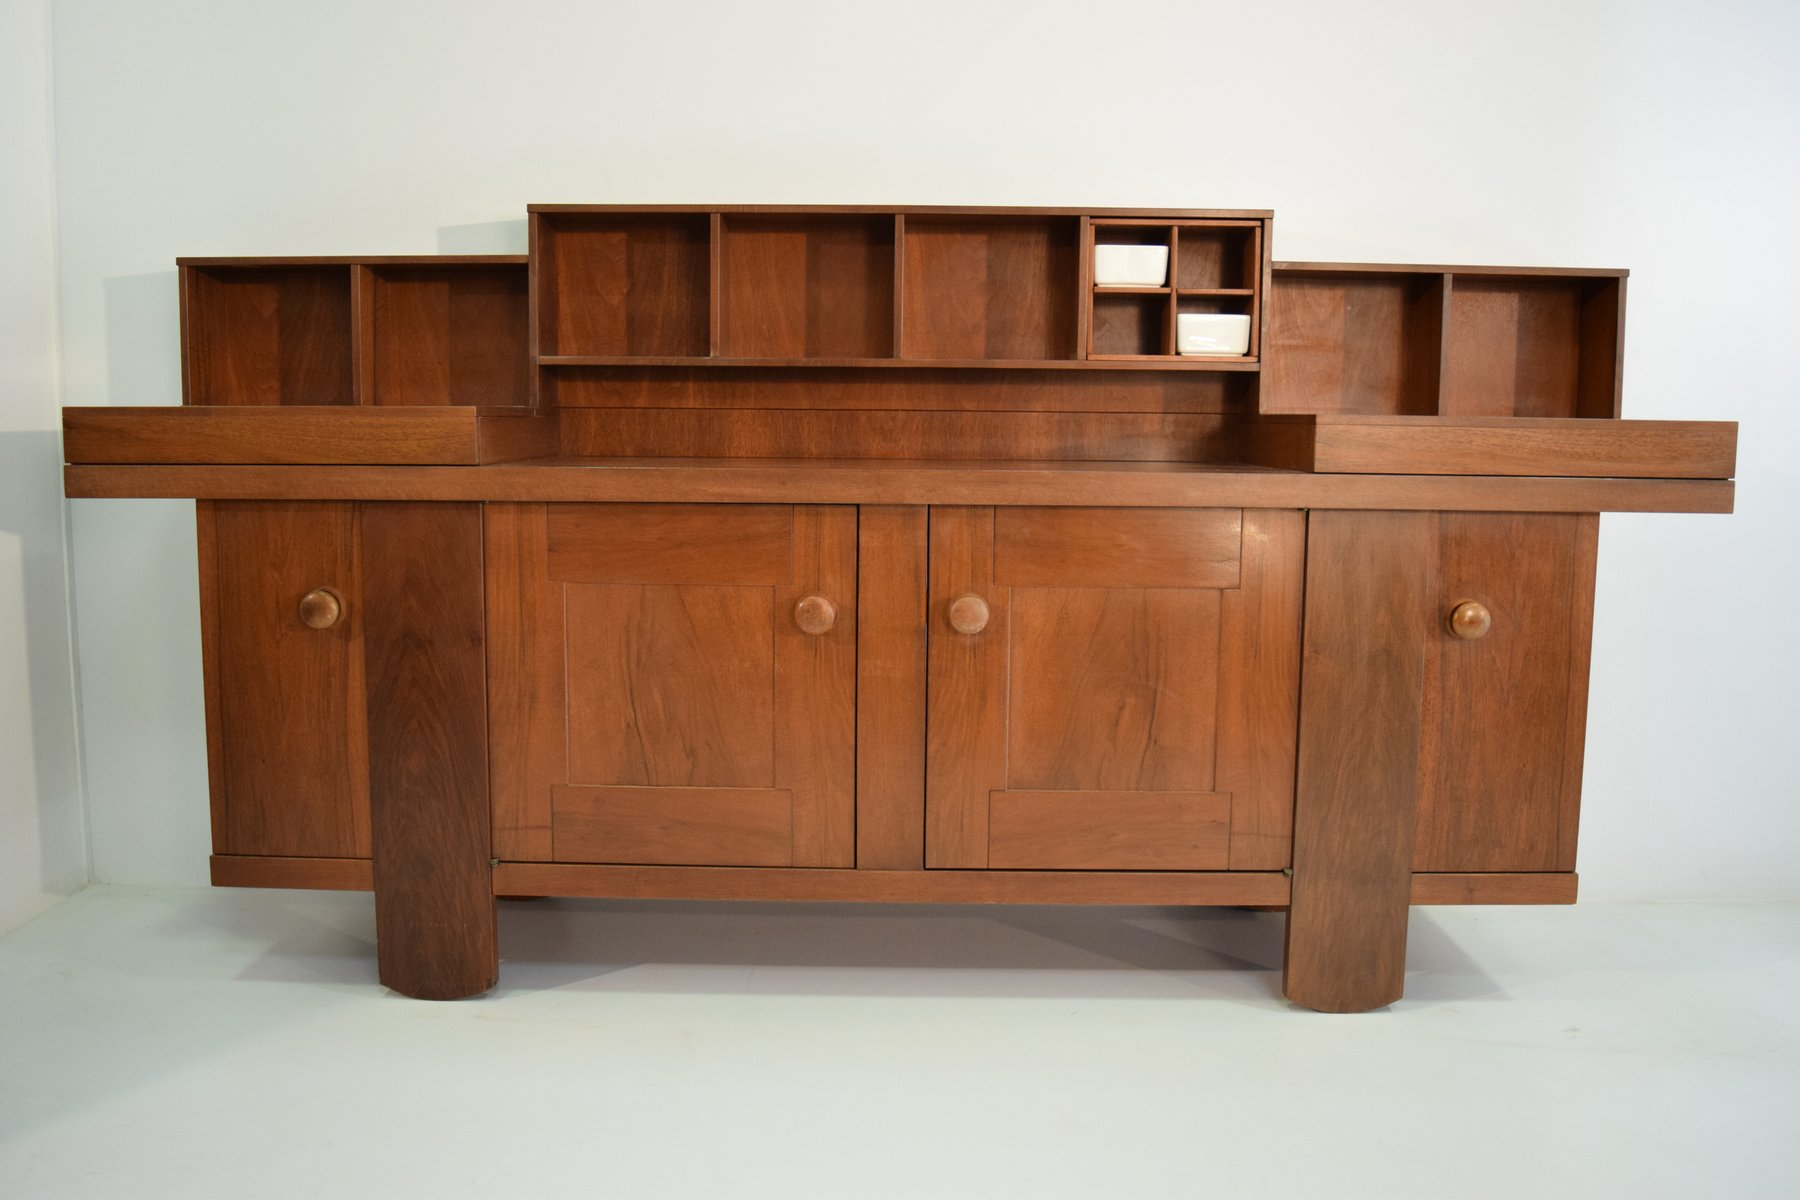 Italian dresser by silvio coppola for bernini 1968 for sale at pamono - Bernini mobili outlet ...